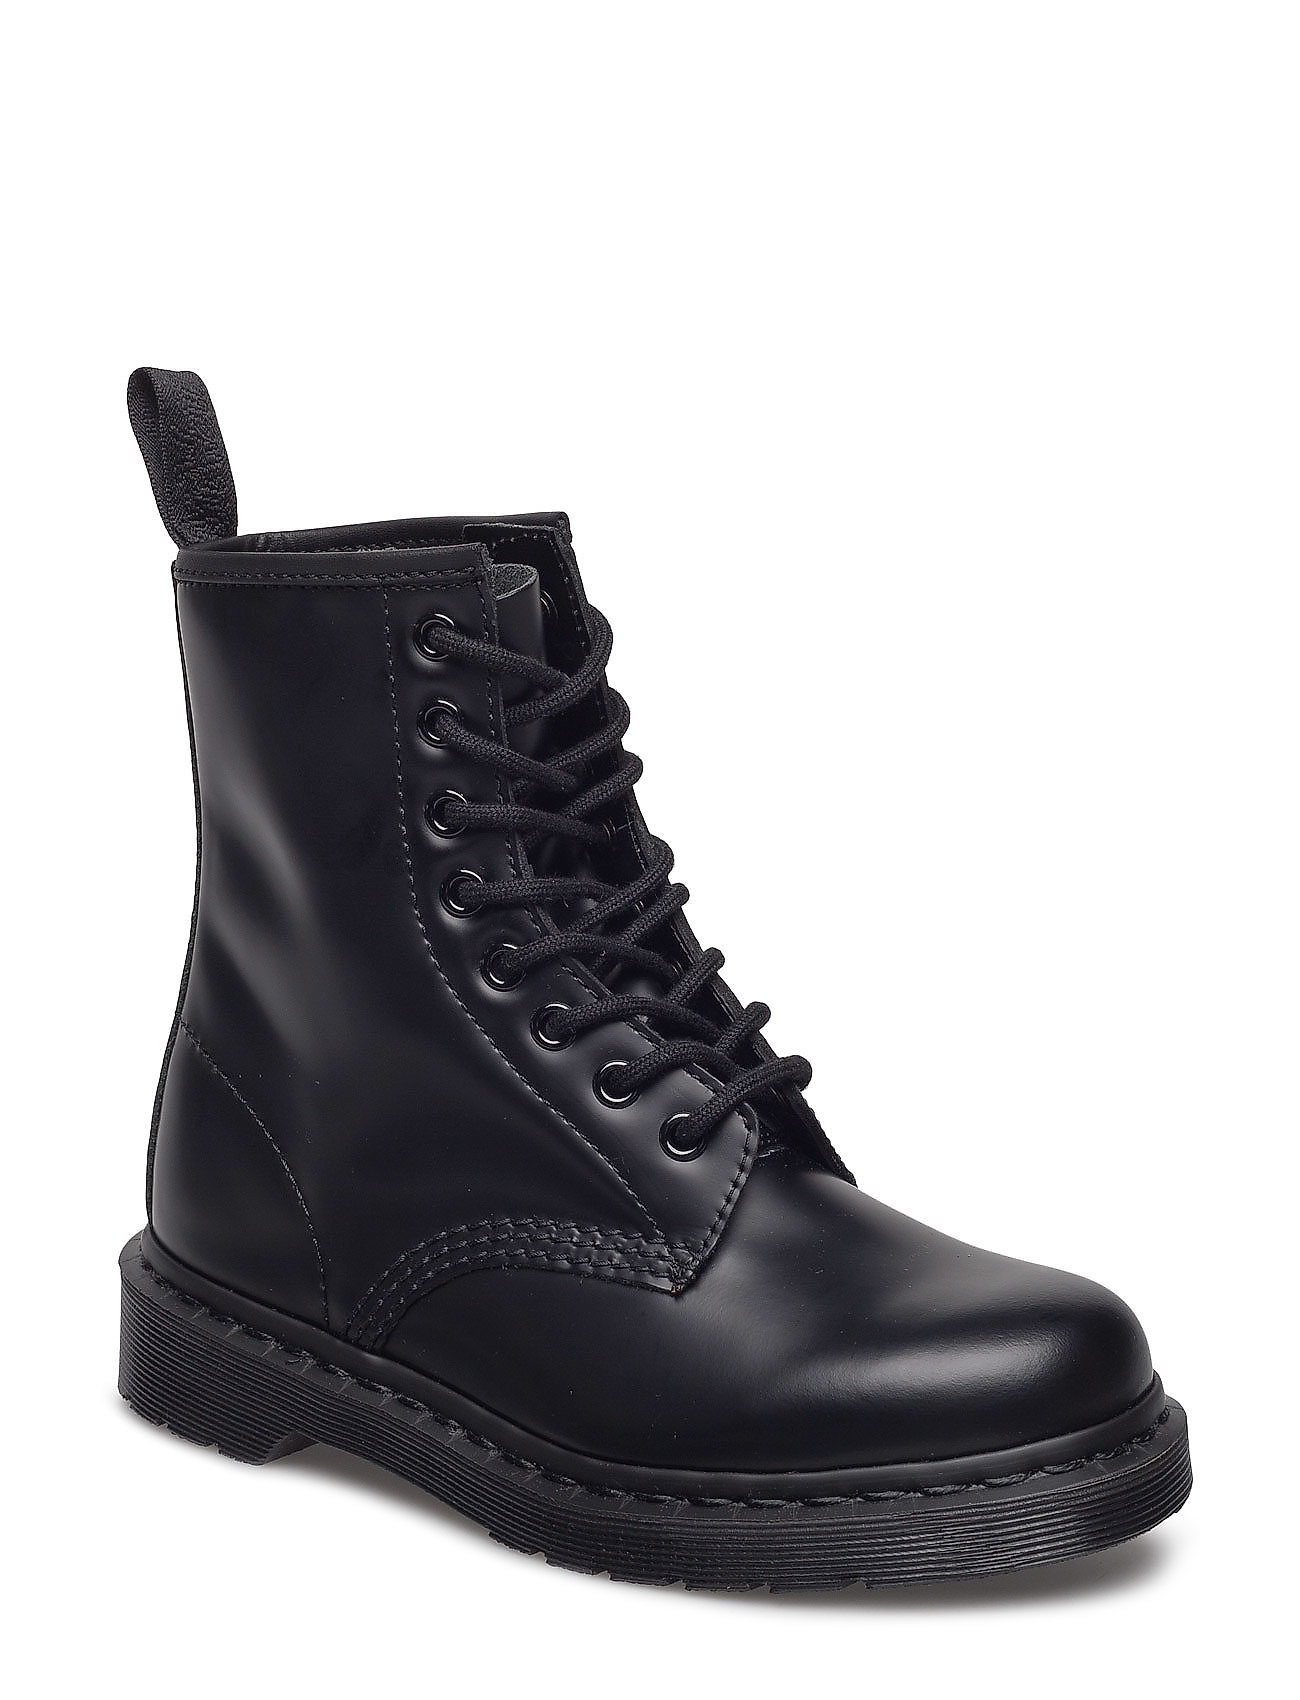 Image of 1460 Mono Black Smooth Shoes Boots Ankle Boots Ankle Boot - Flat Blå Dr. Martens (3445667665)